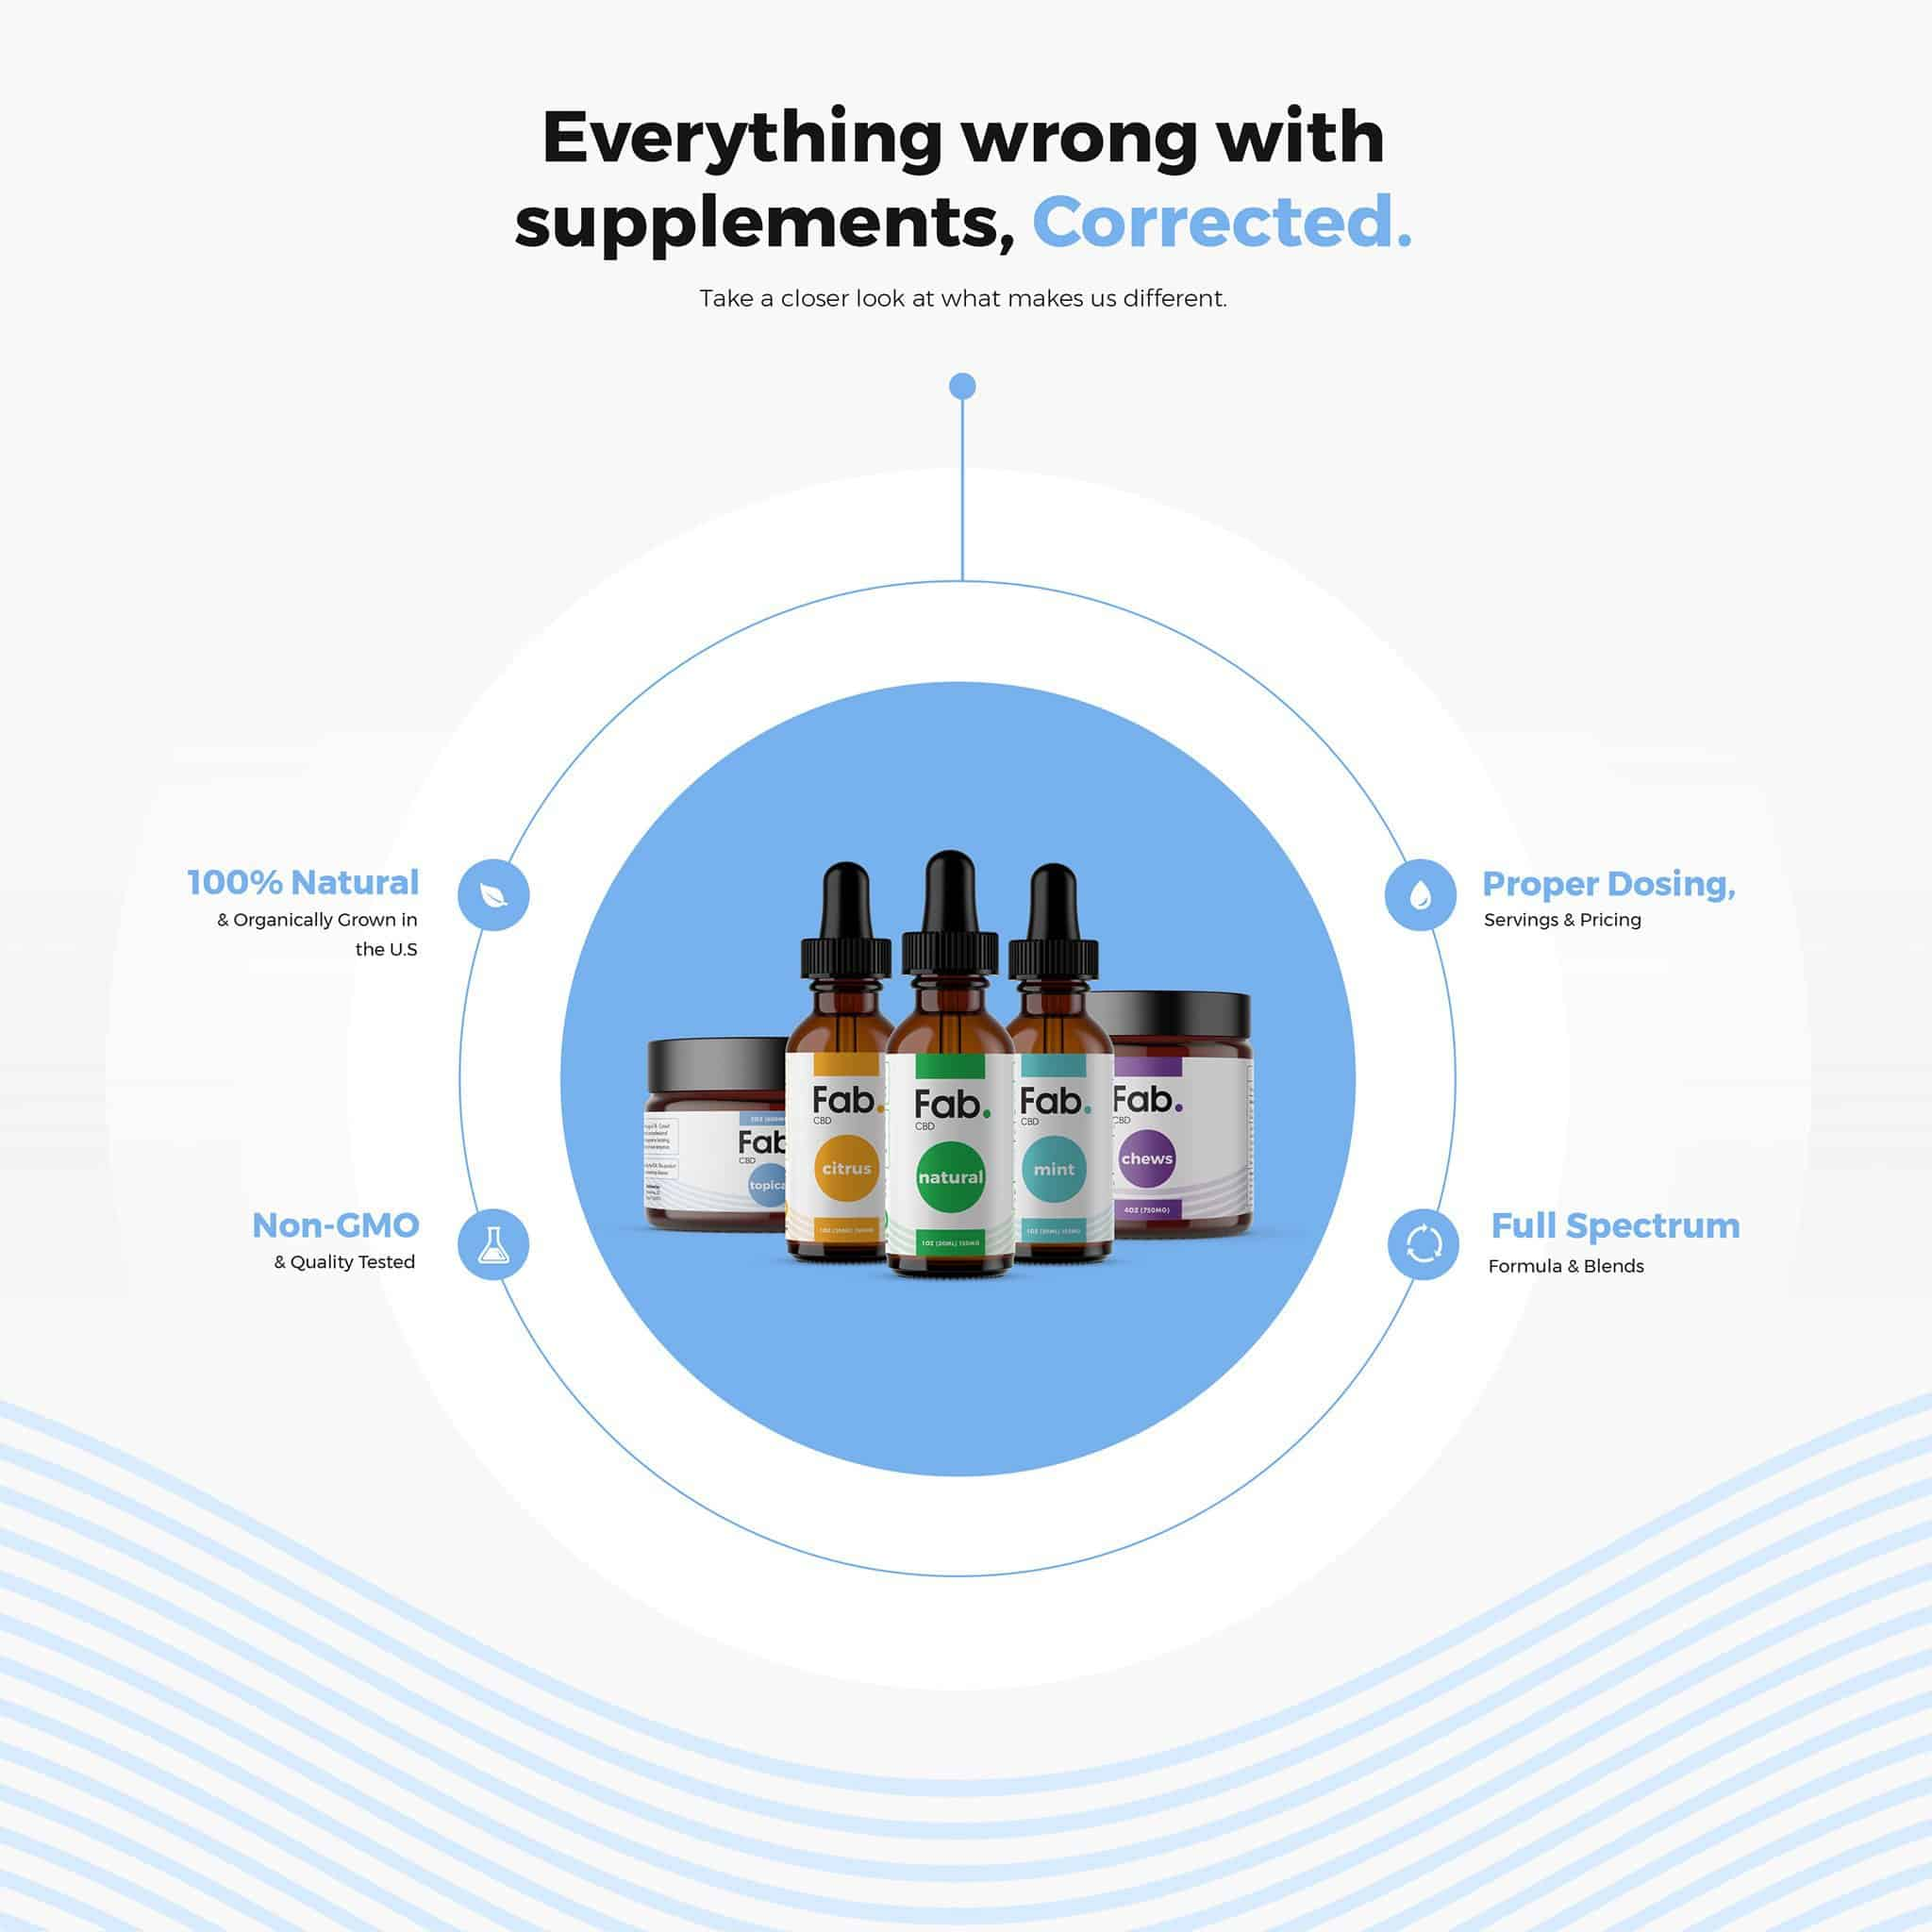 FAB CBD Coupon Code - Online Discount - Save On Cannabis